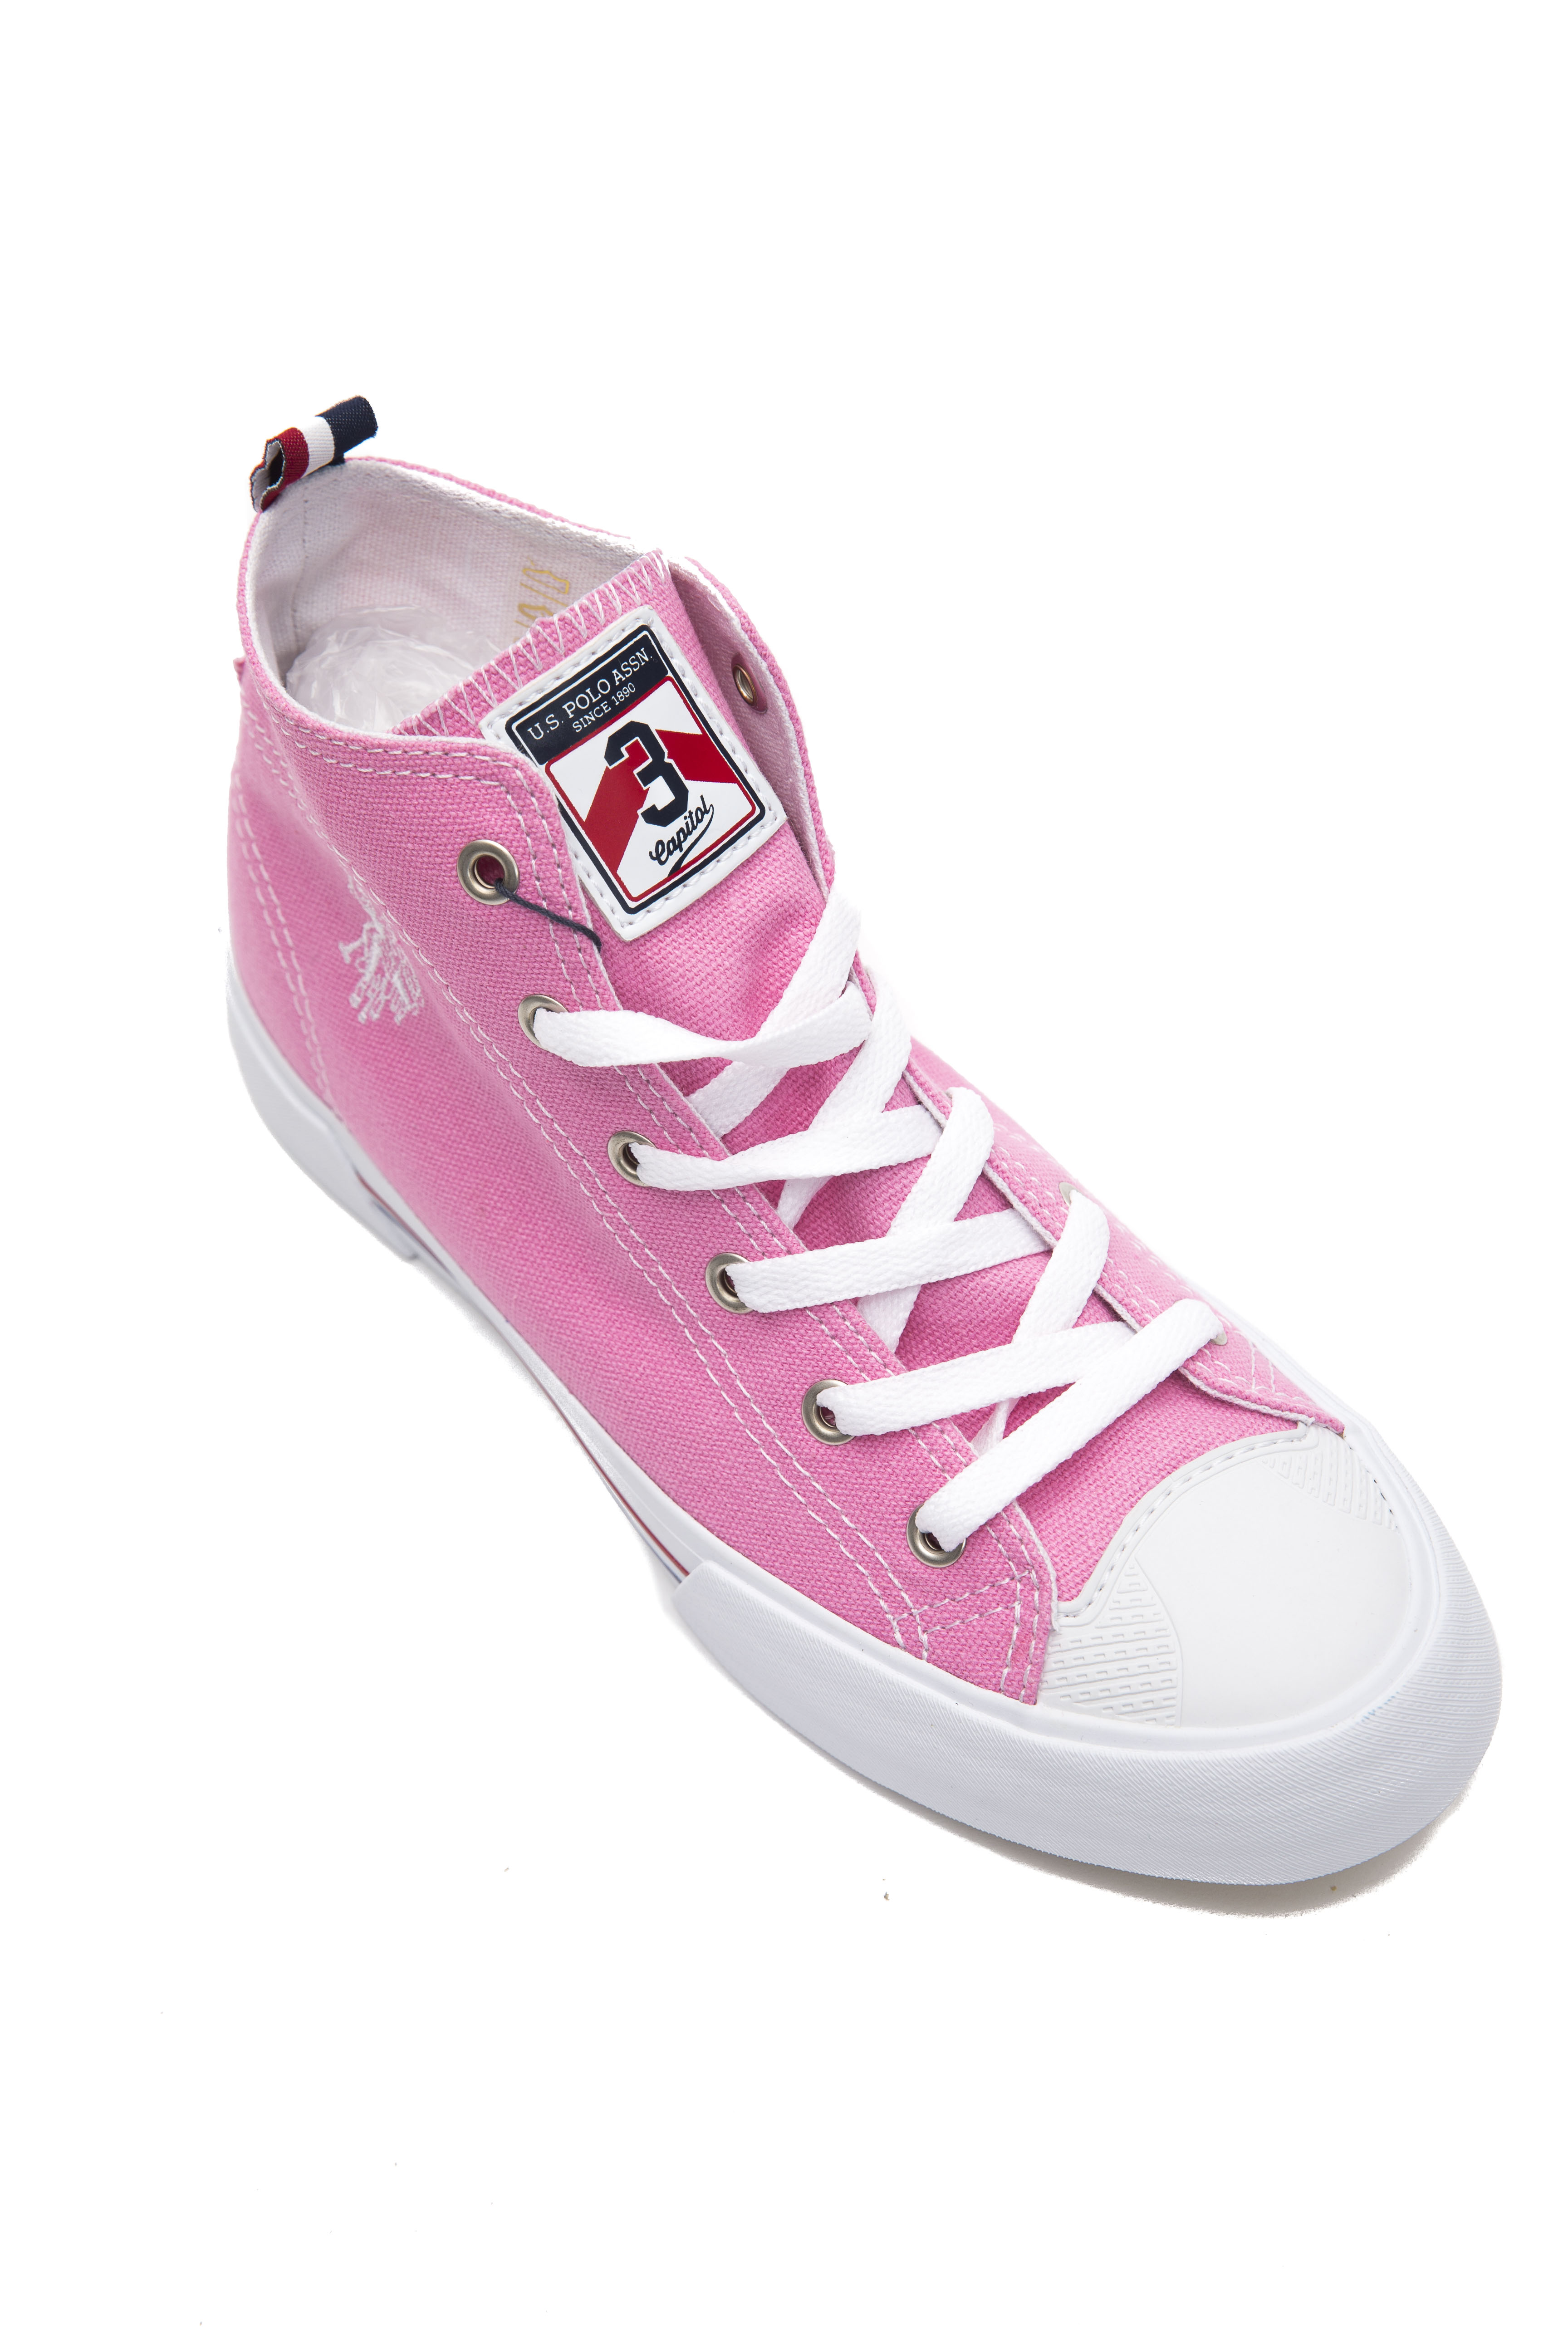 Sneakers Rose Sneakers Ronalda Polo Us Us Rose f6Ygvb7y